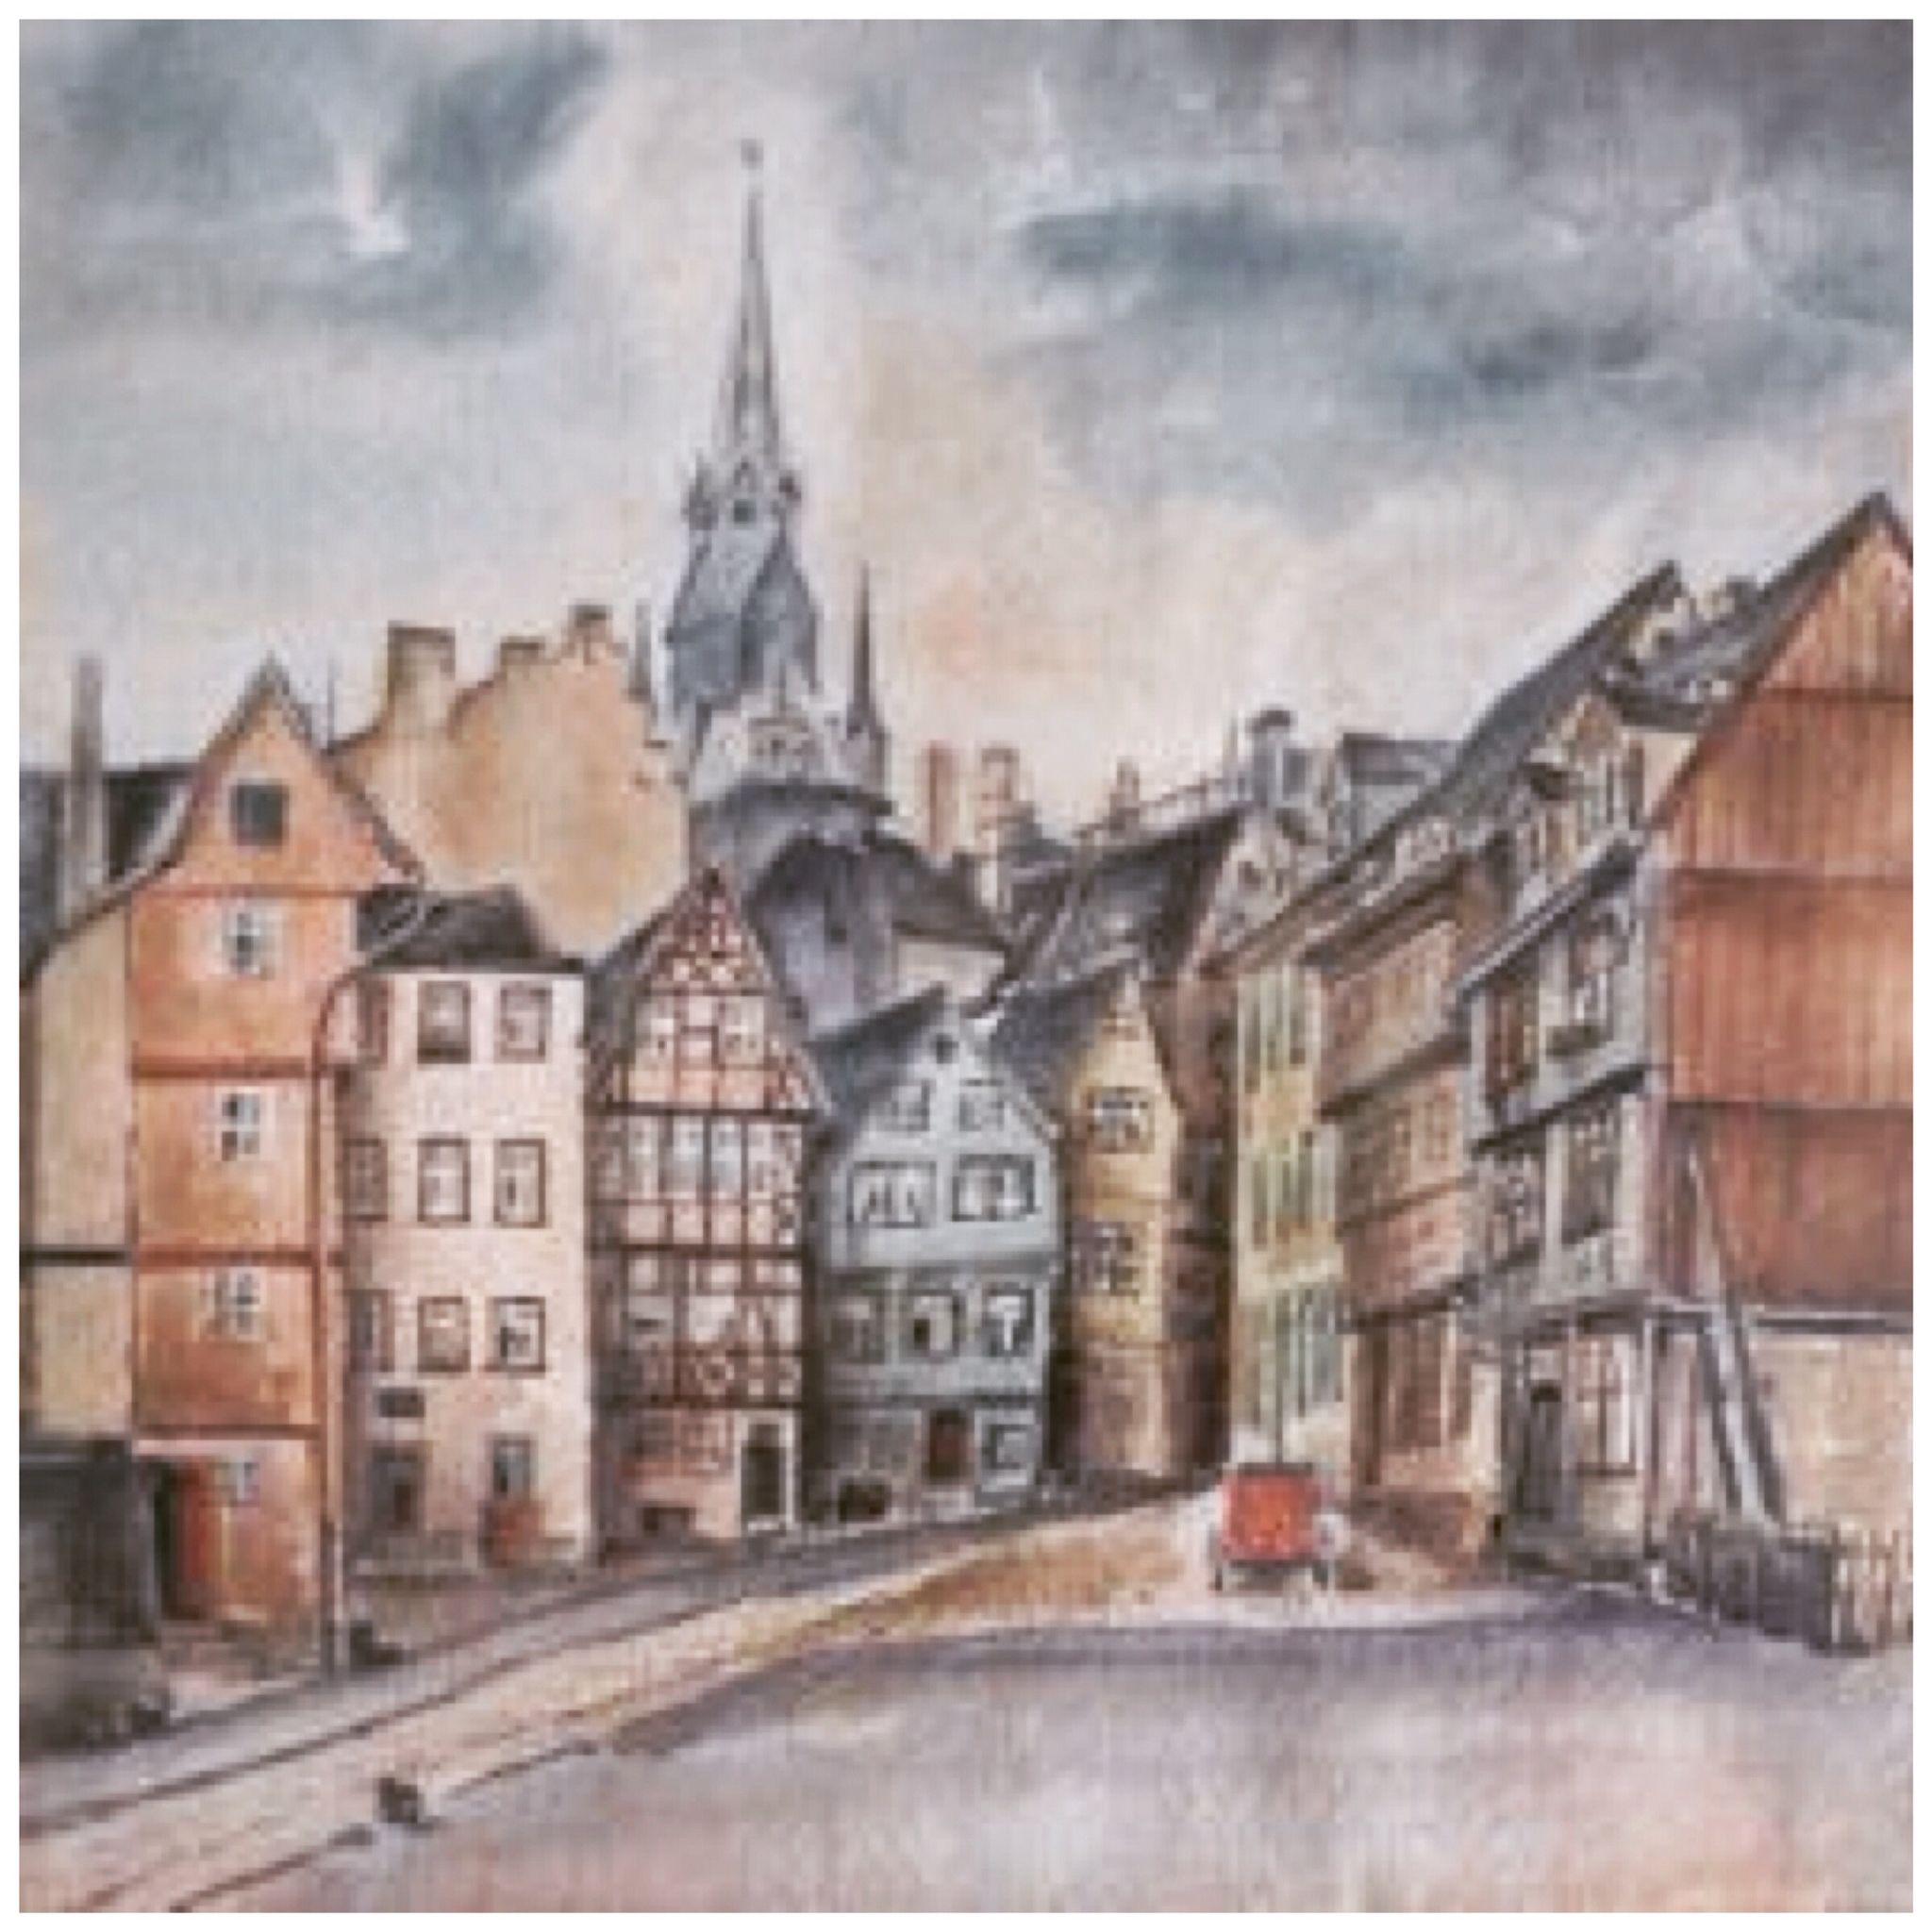 Medieval houses and market church, Halle/S, Germany, painted in 1936 by Hans Studenroth